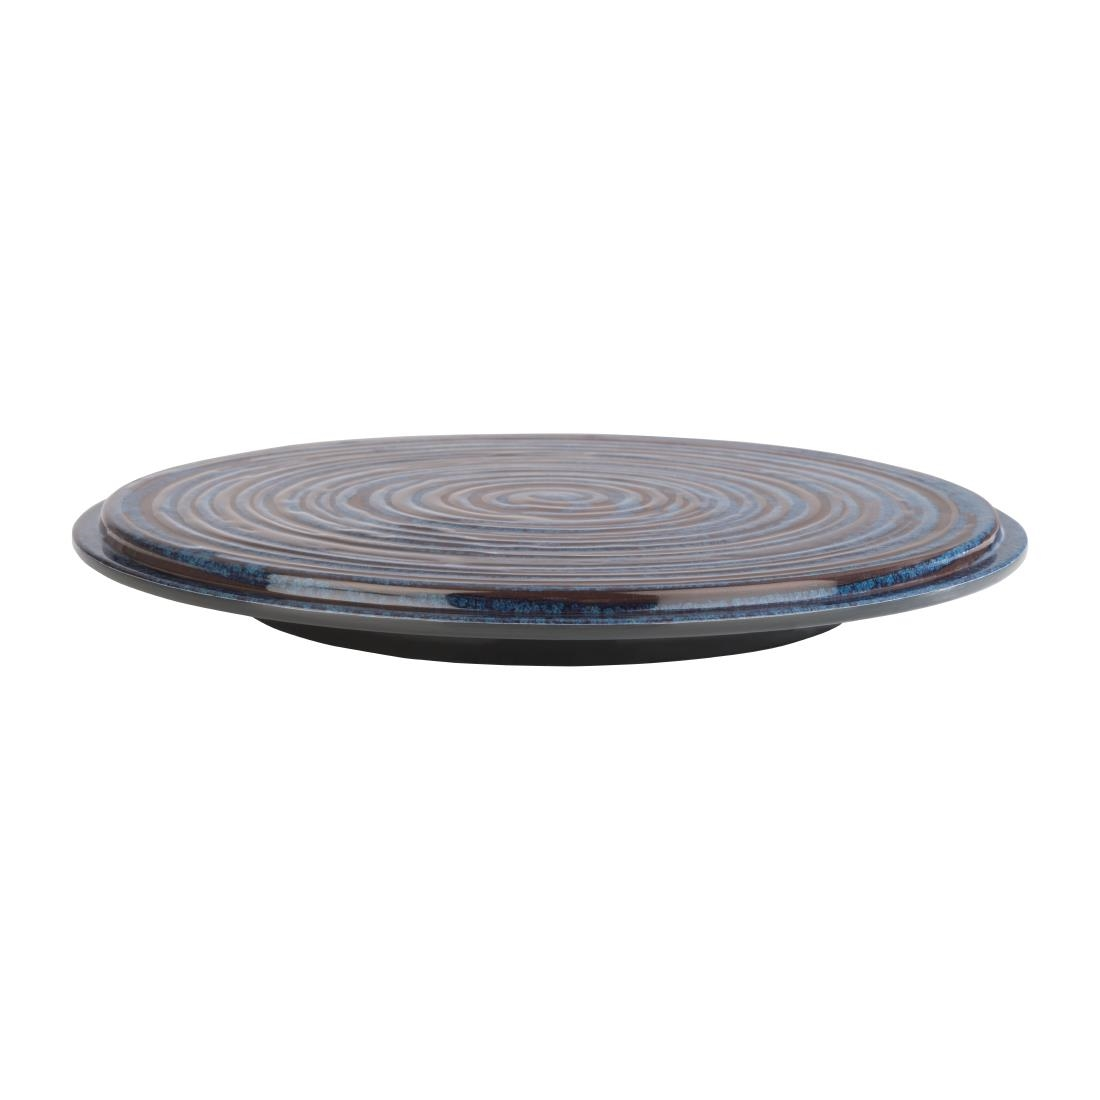 Image of APS Loops Melamine Cake Stand Blue 215mm